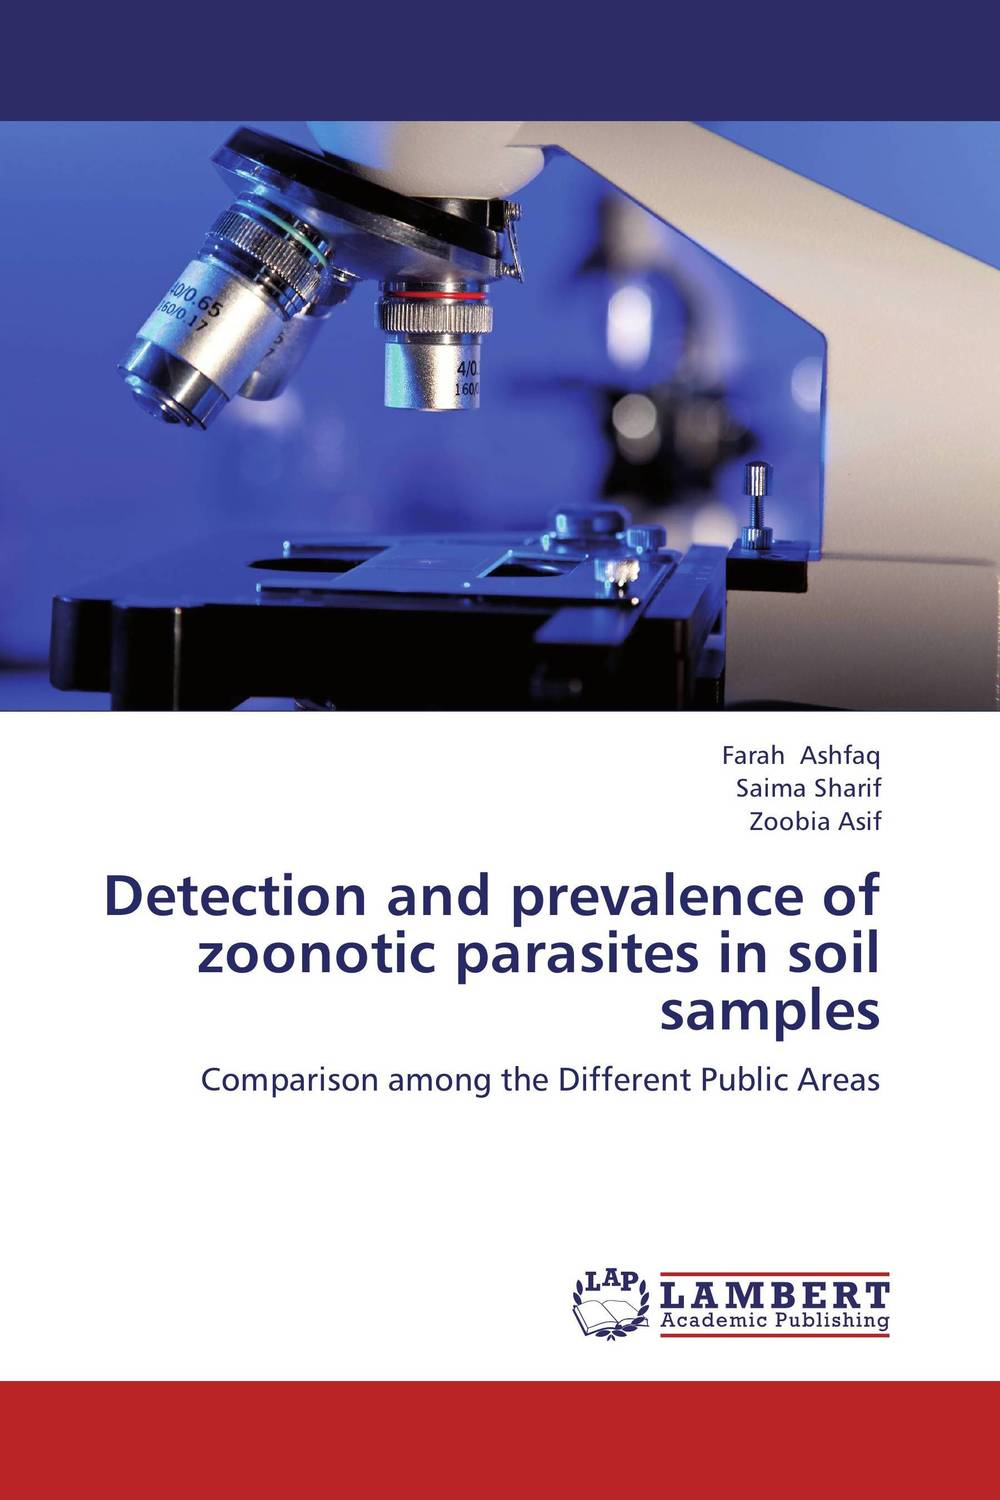 Detection and prevalence of zoonotic parasites in soil samples kareem morsy fish parasites part i